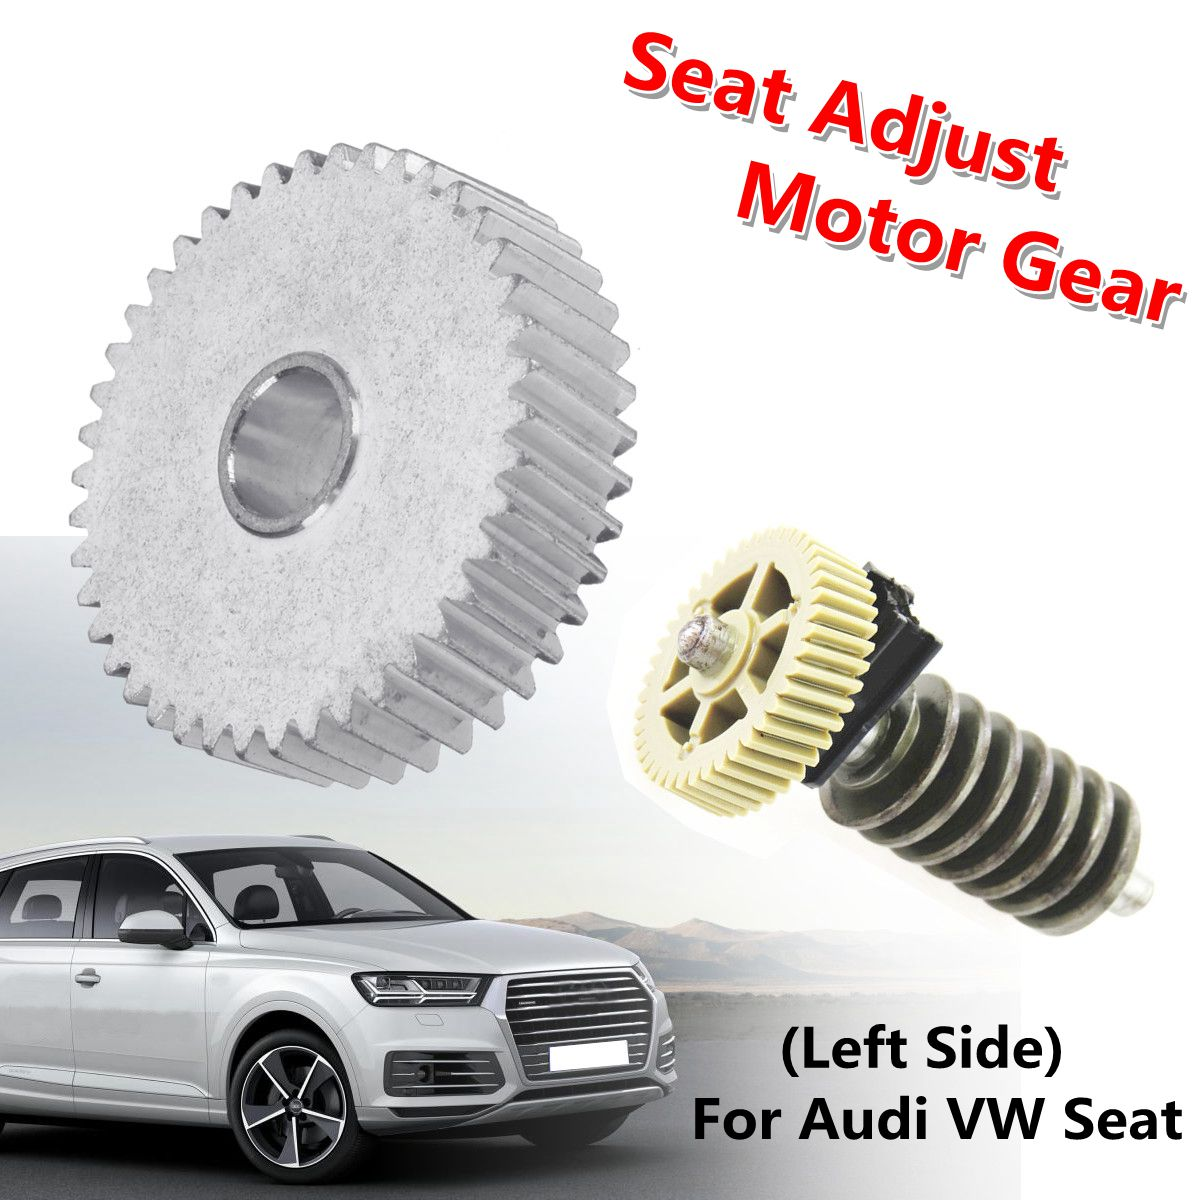 Car Seat Adjust Motor Wheel Gear Left Side For Audi A4 A6 Q7 For VW Touareg Seat Exeo 7L0 959 111 4F0 959 111 4F0959111